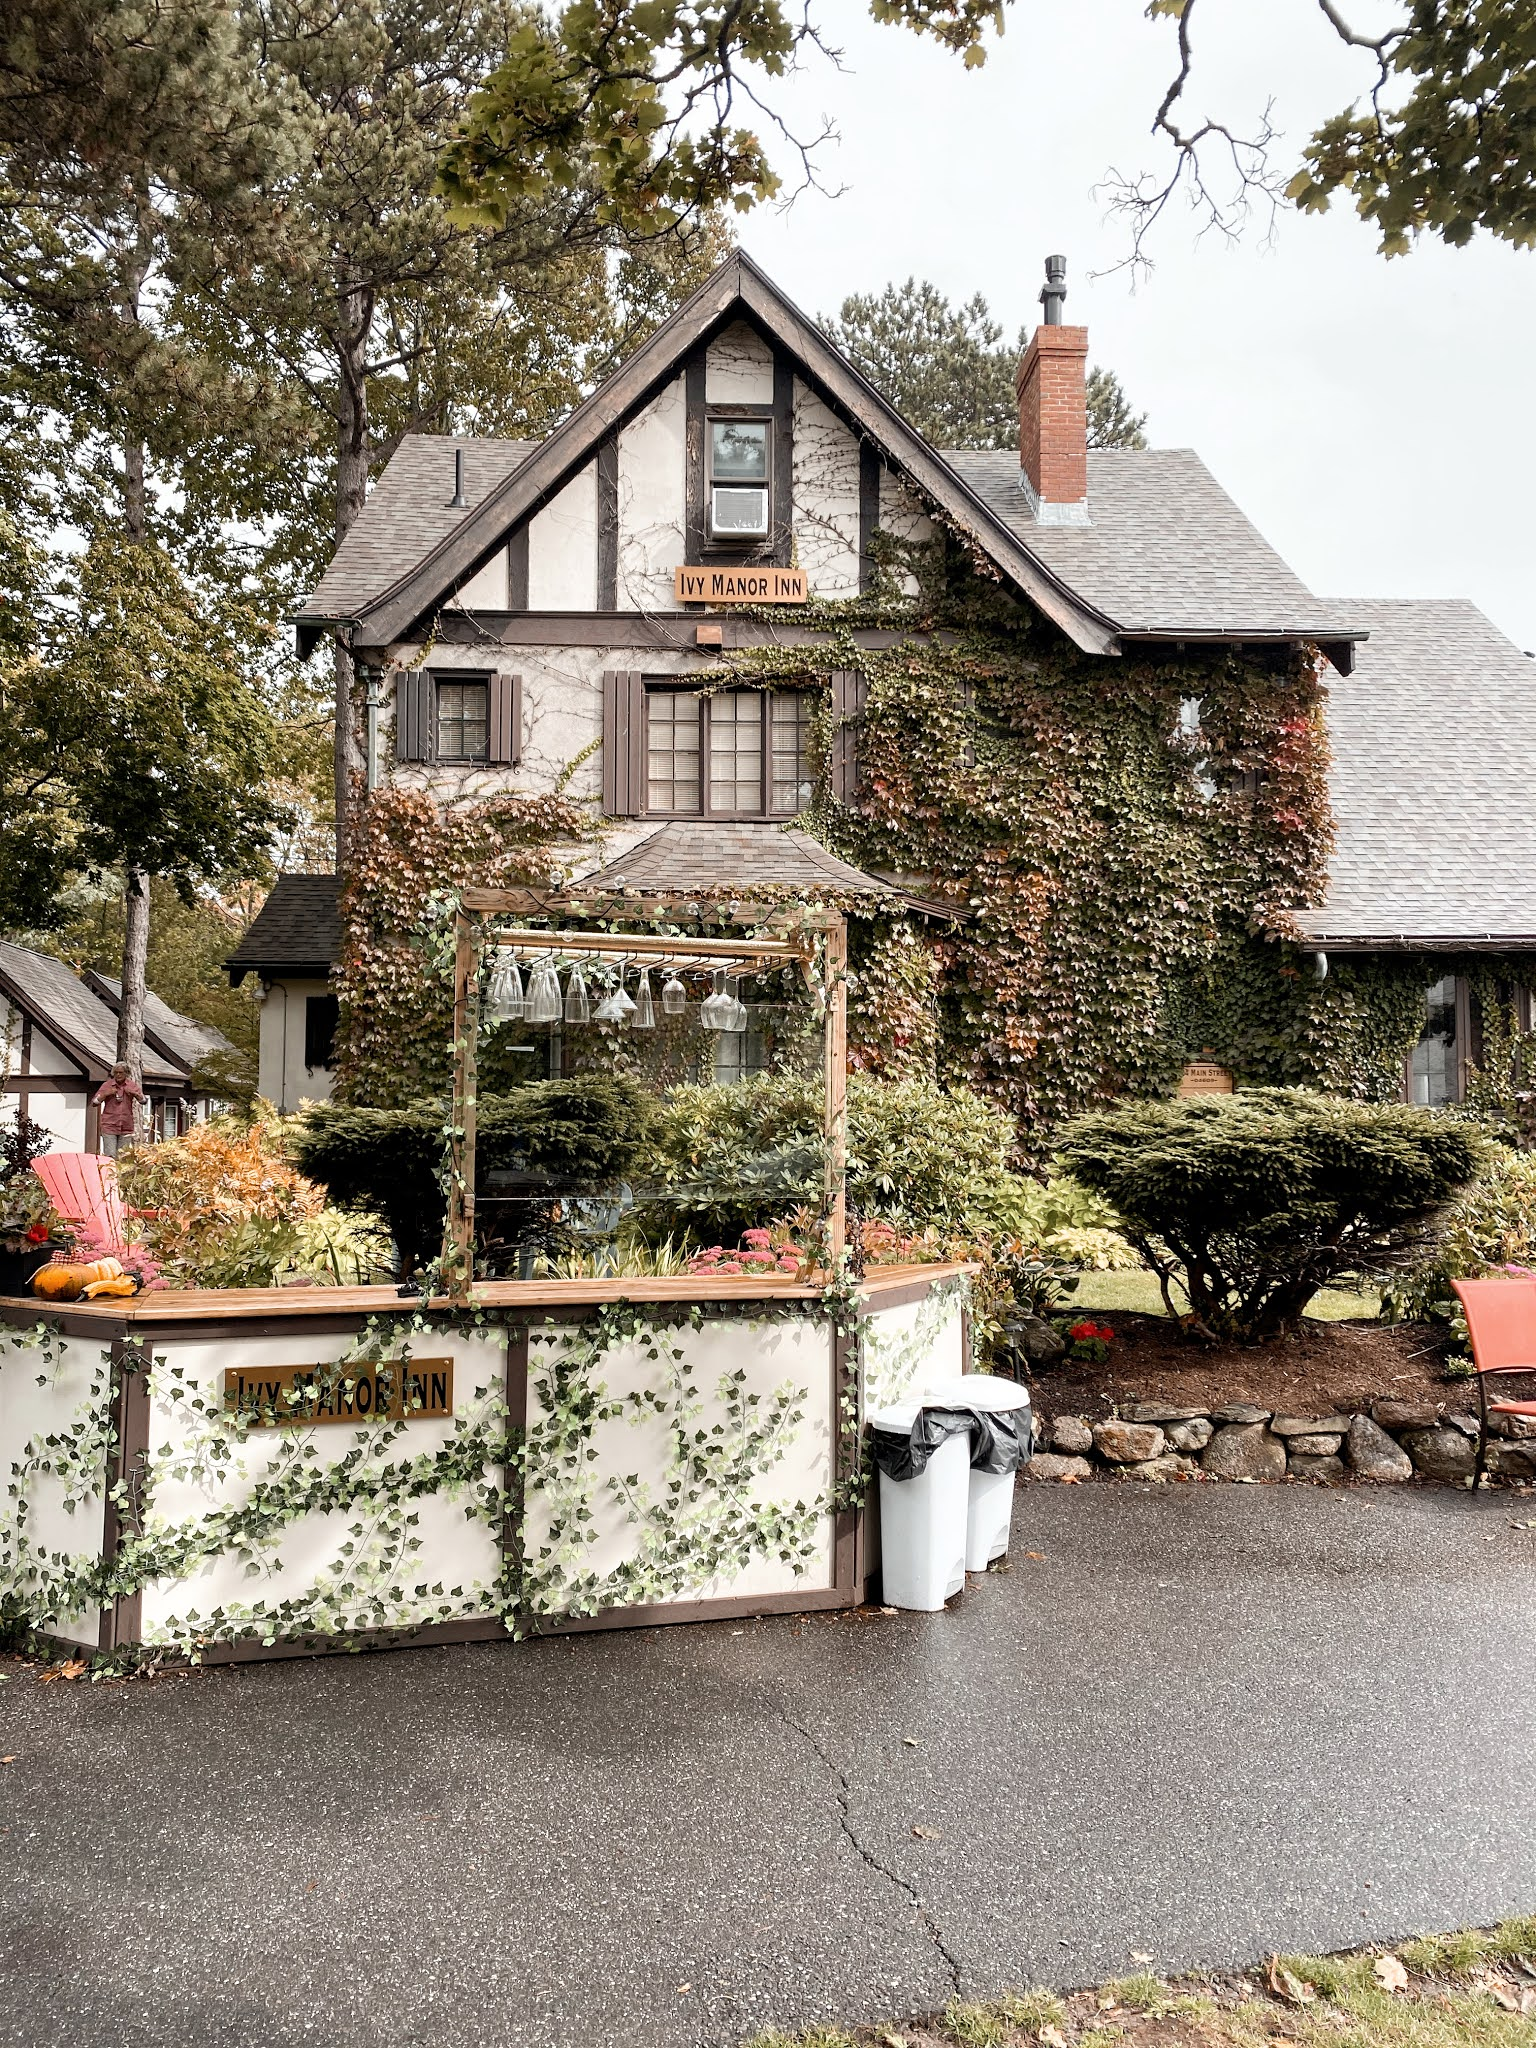 5 Can't Miss Spots to Visit in New England | biblio-style.com